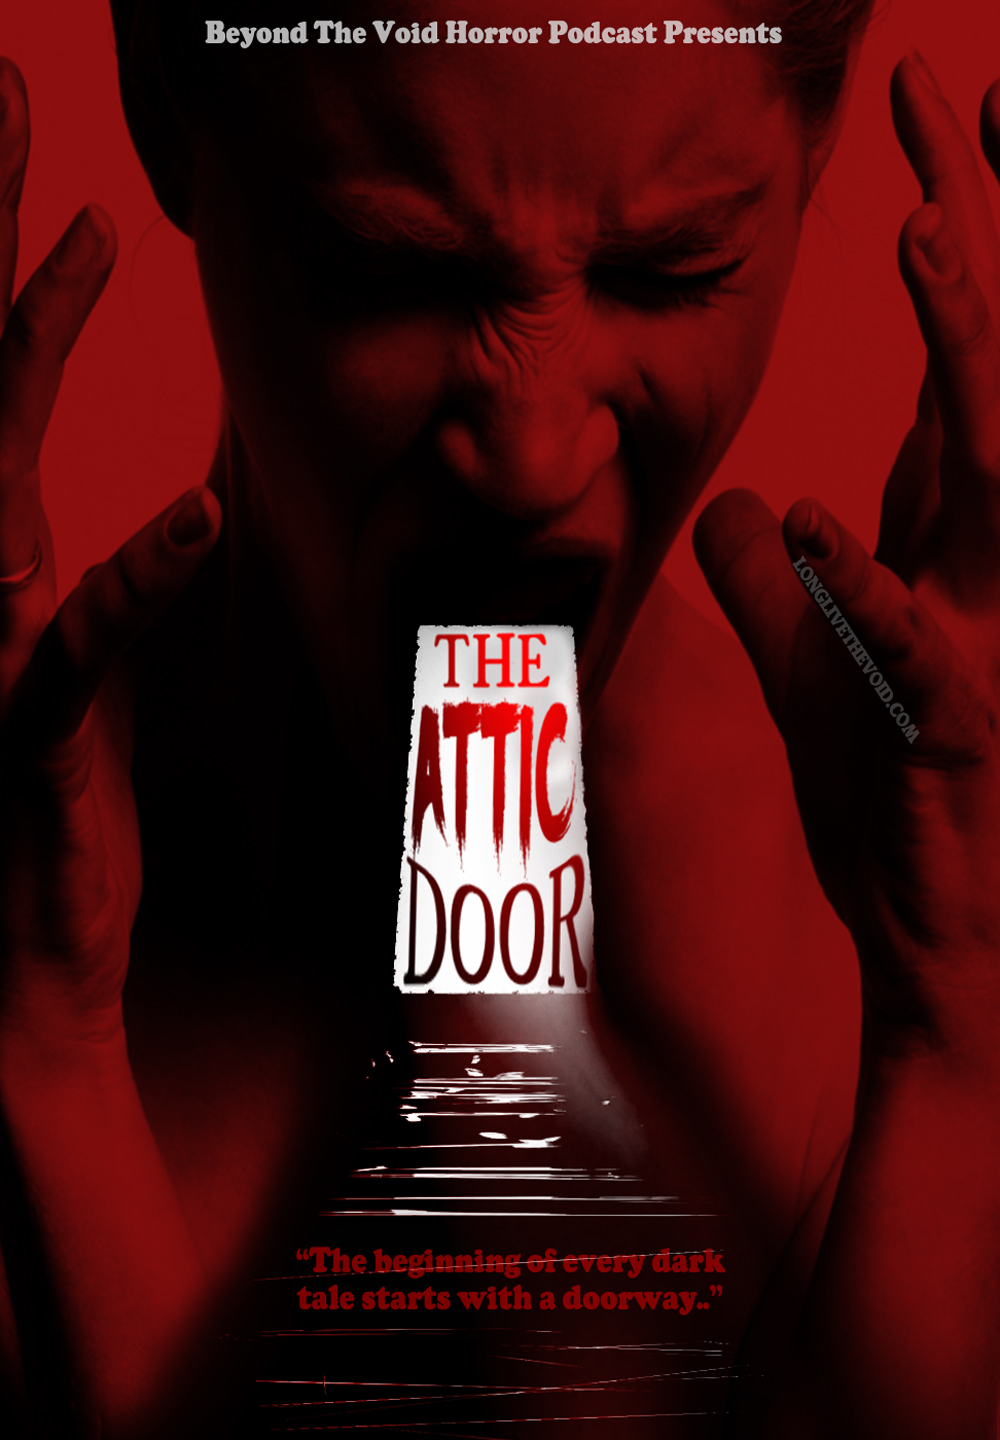 FULL-VHS-COVER-The-Attic-Door.jpg